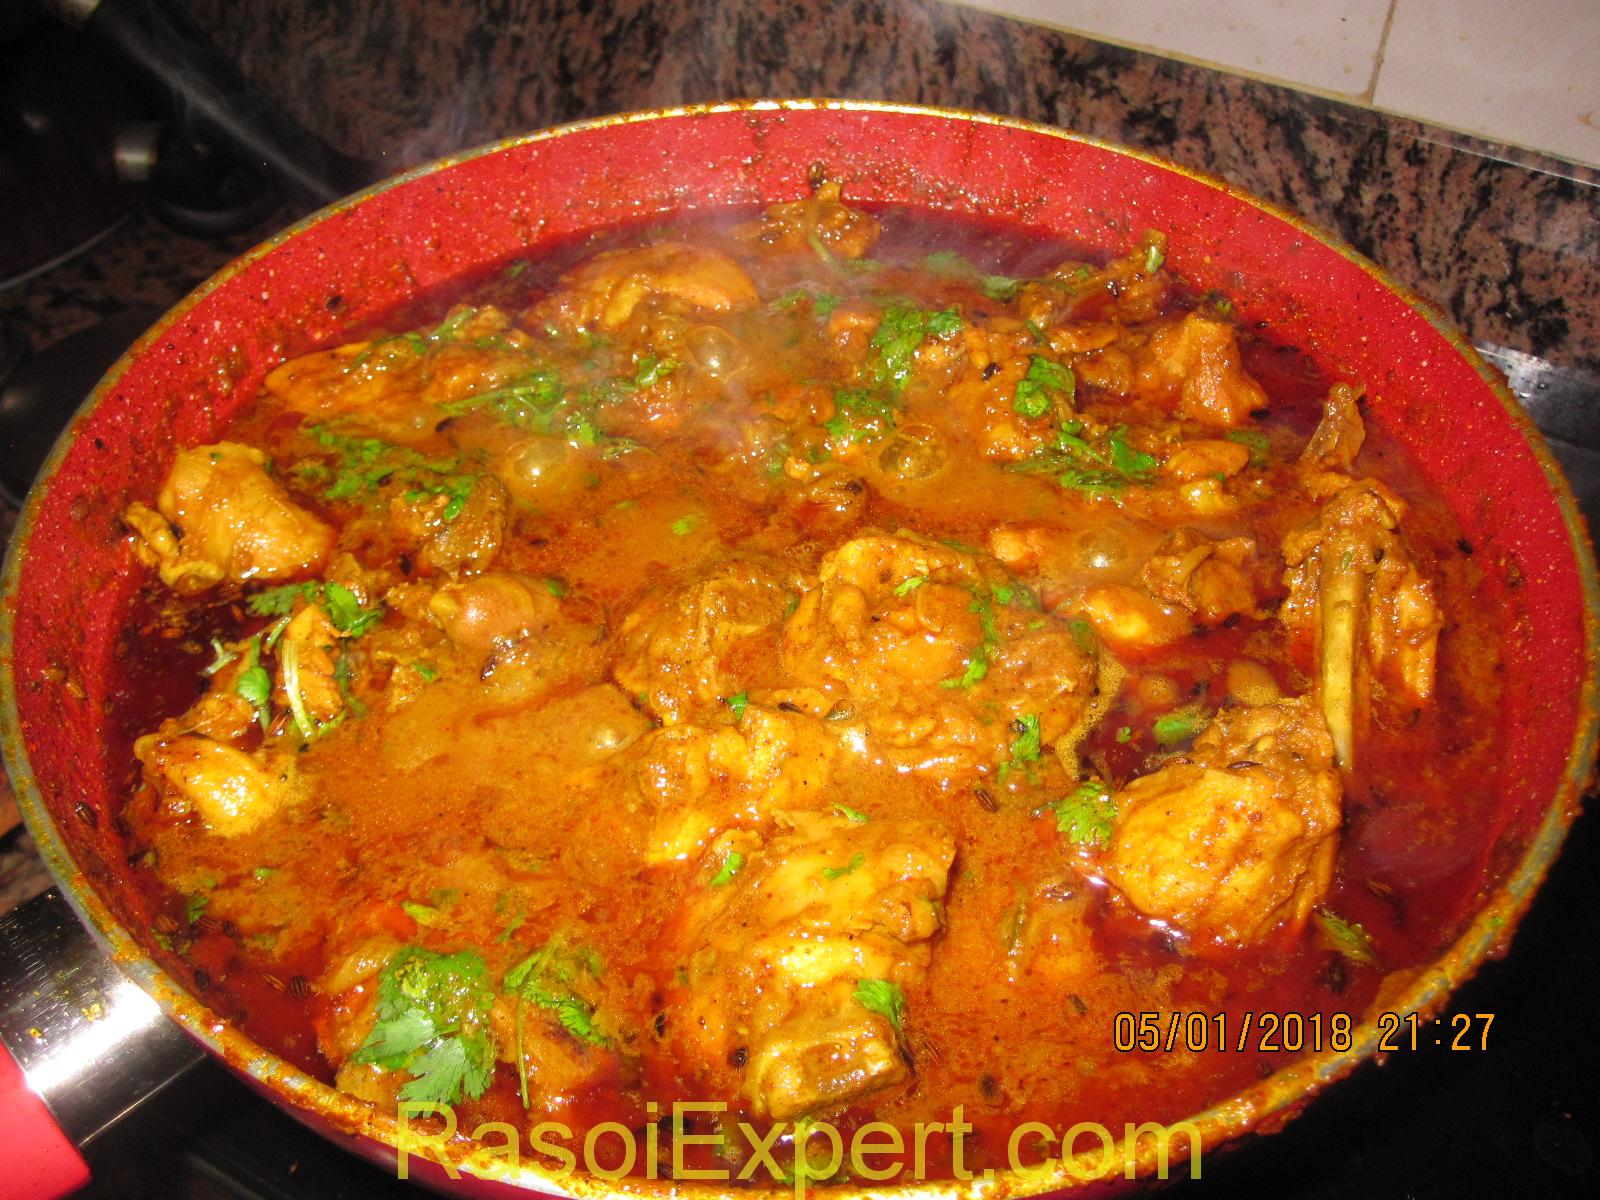 Chicken  Recipe - How To Make Chicken Recipe